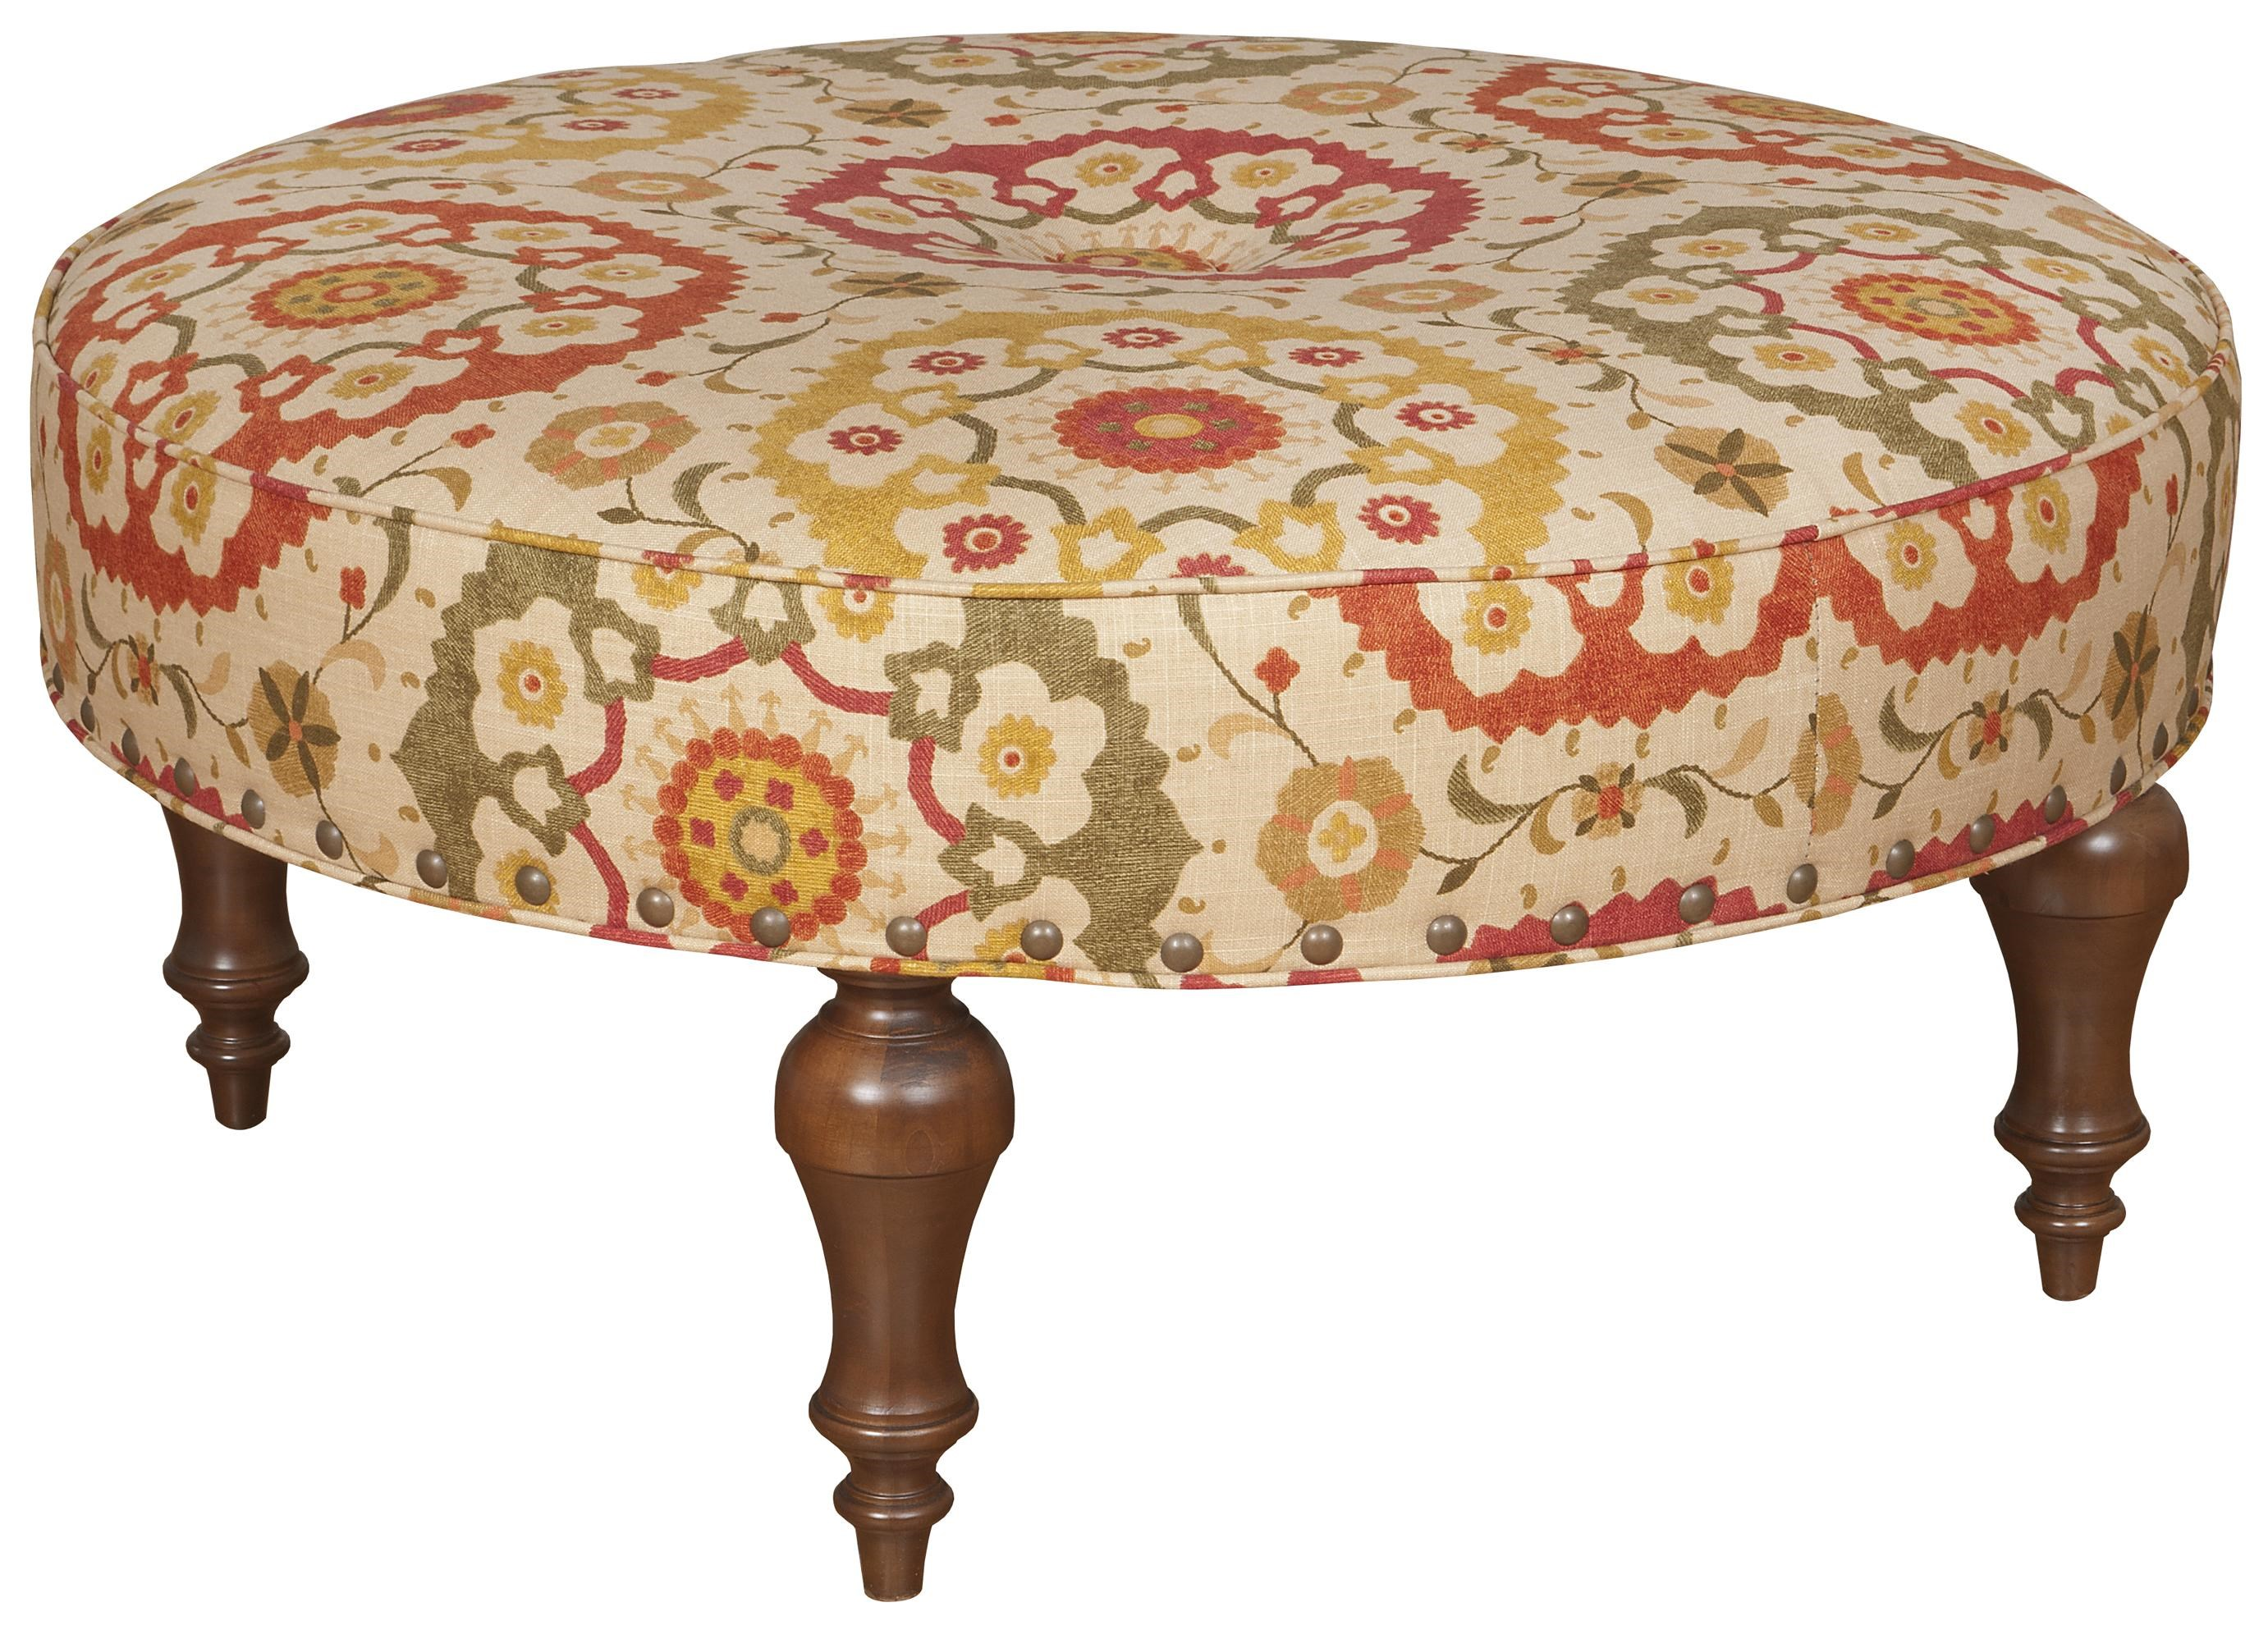 King Hickory King Hickory Accent Chairs And Ottomans Round Olympic Ottoman  With Button Tufted Seat Detail